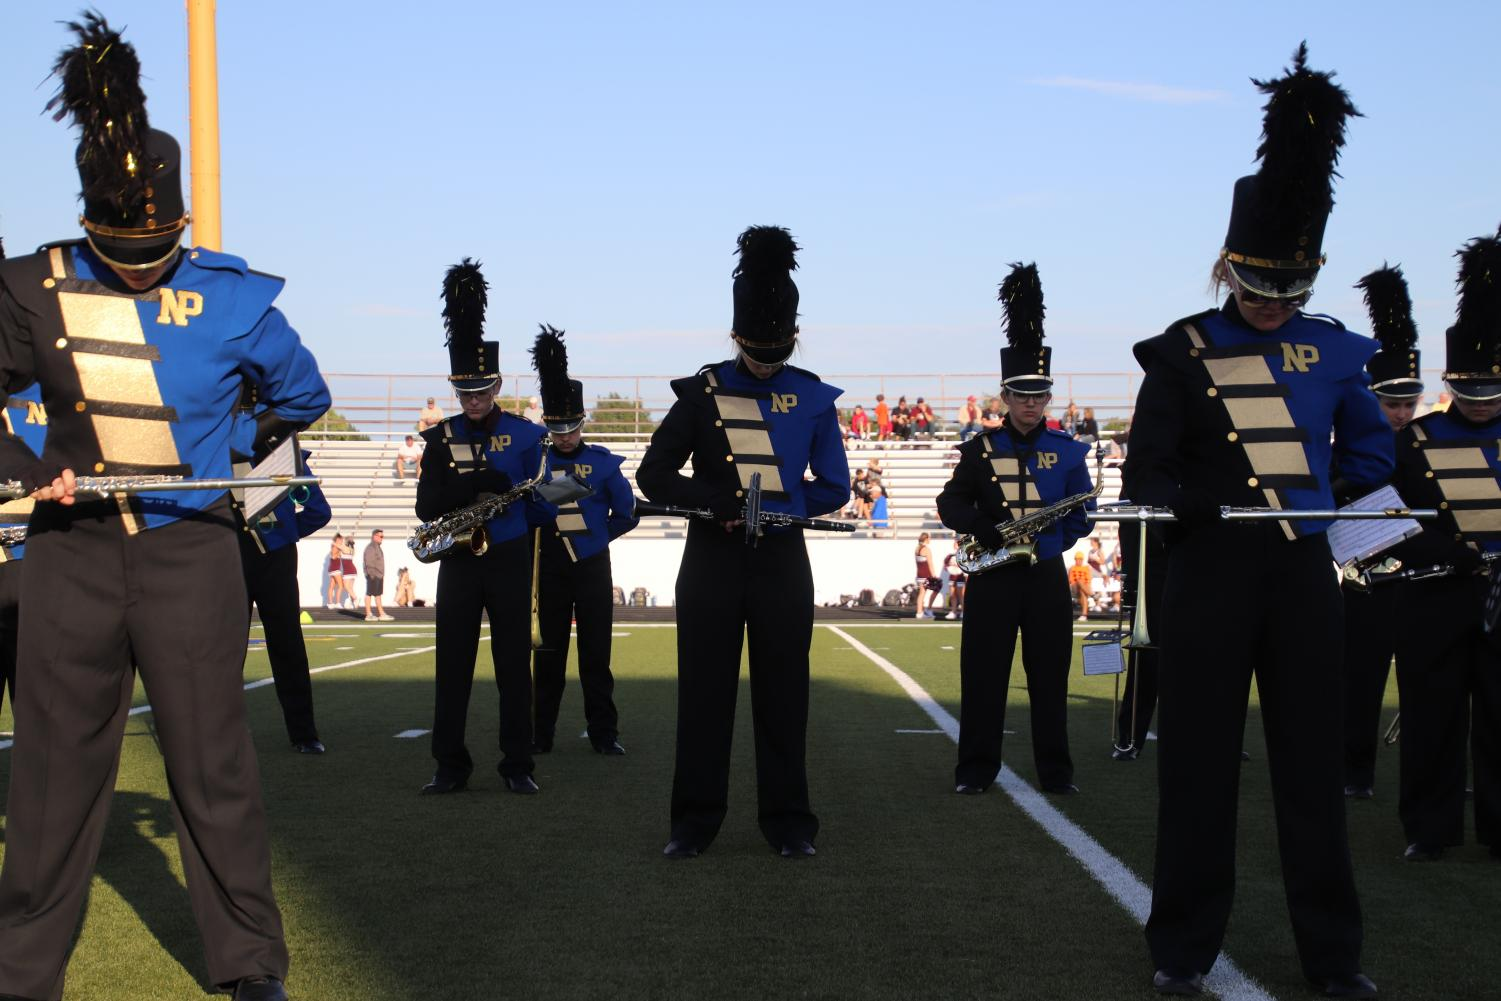 The North Platte High School marching band made history by winning their first superior in Lincoln in NPHS history, Oct. 19, 2019.